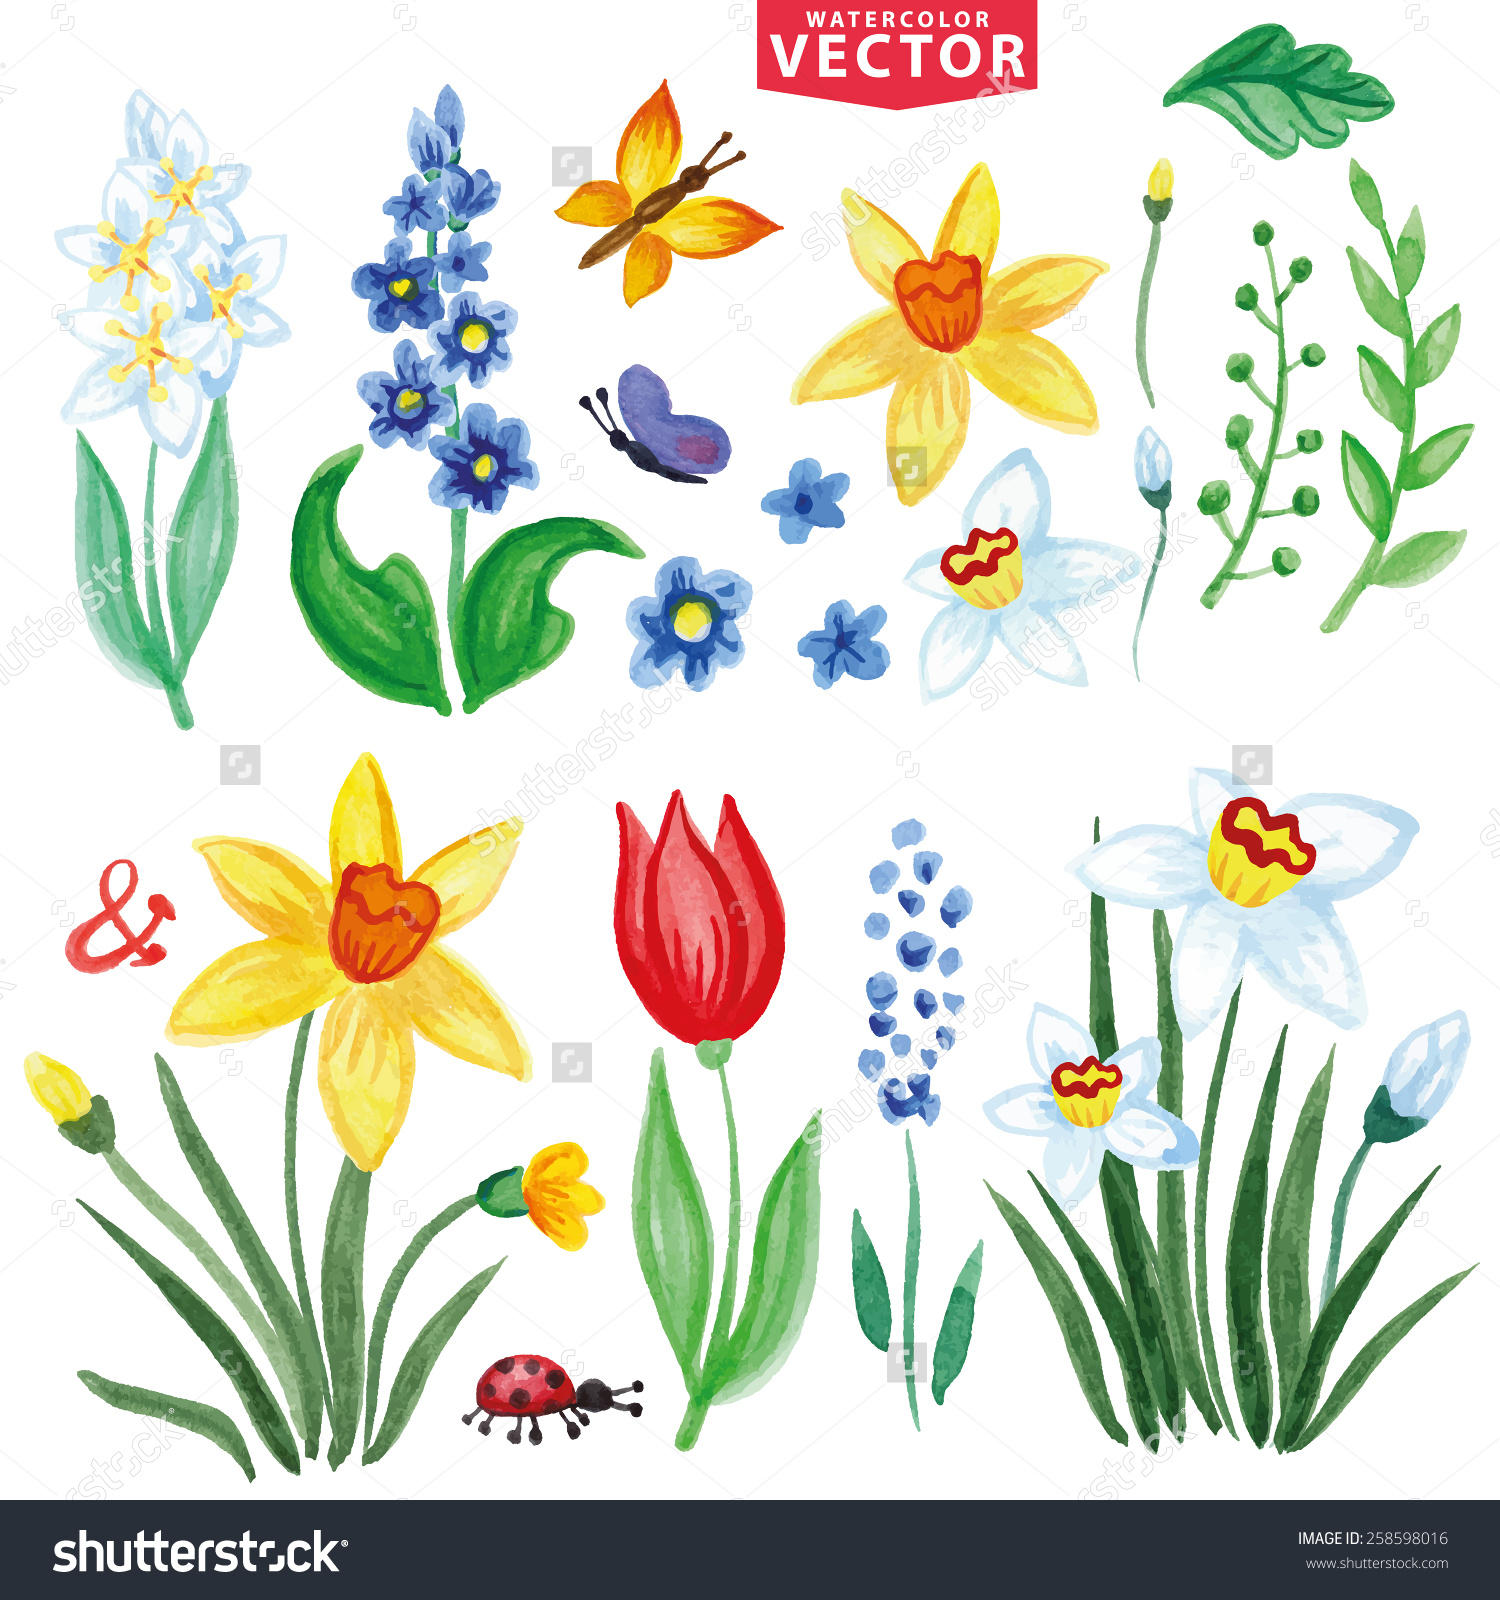 Watercolor Flowers,Insects,Branch.Vintage Floral Vector,Isolated.